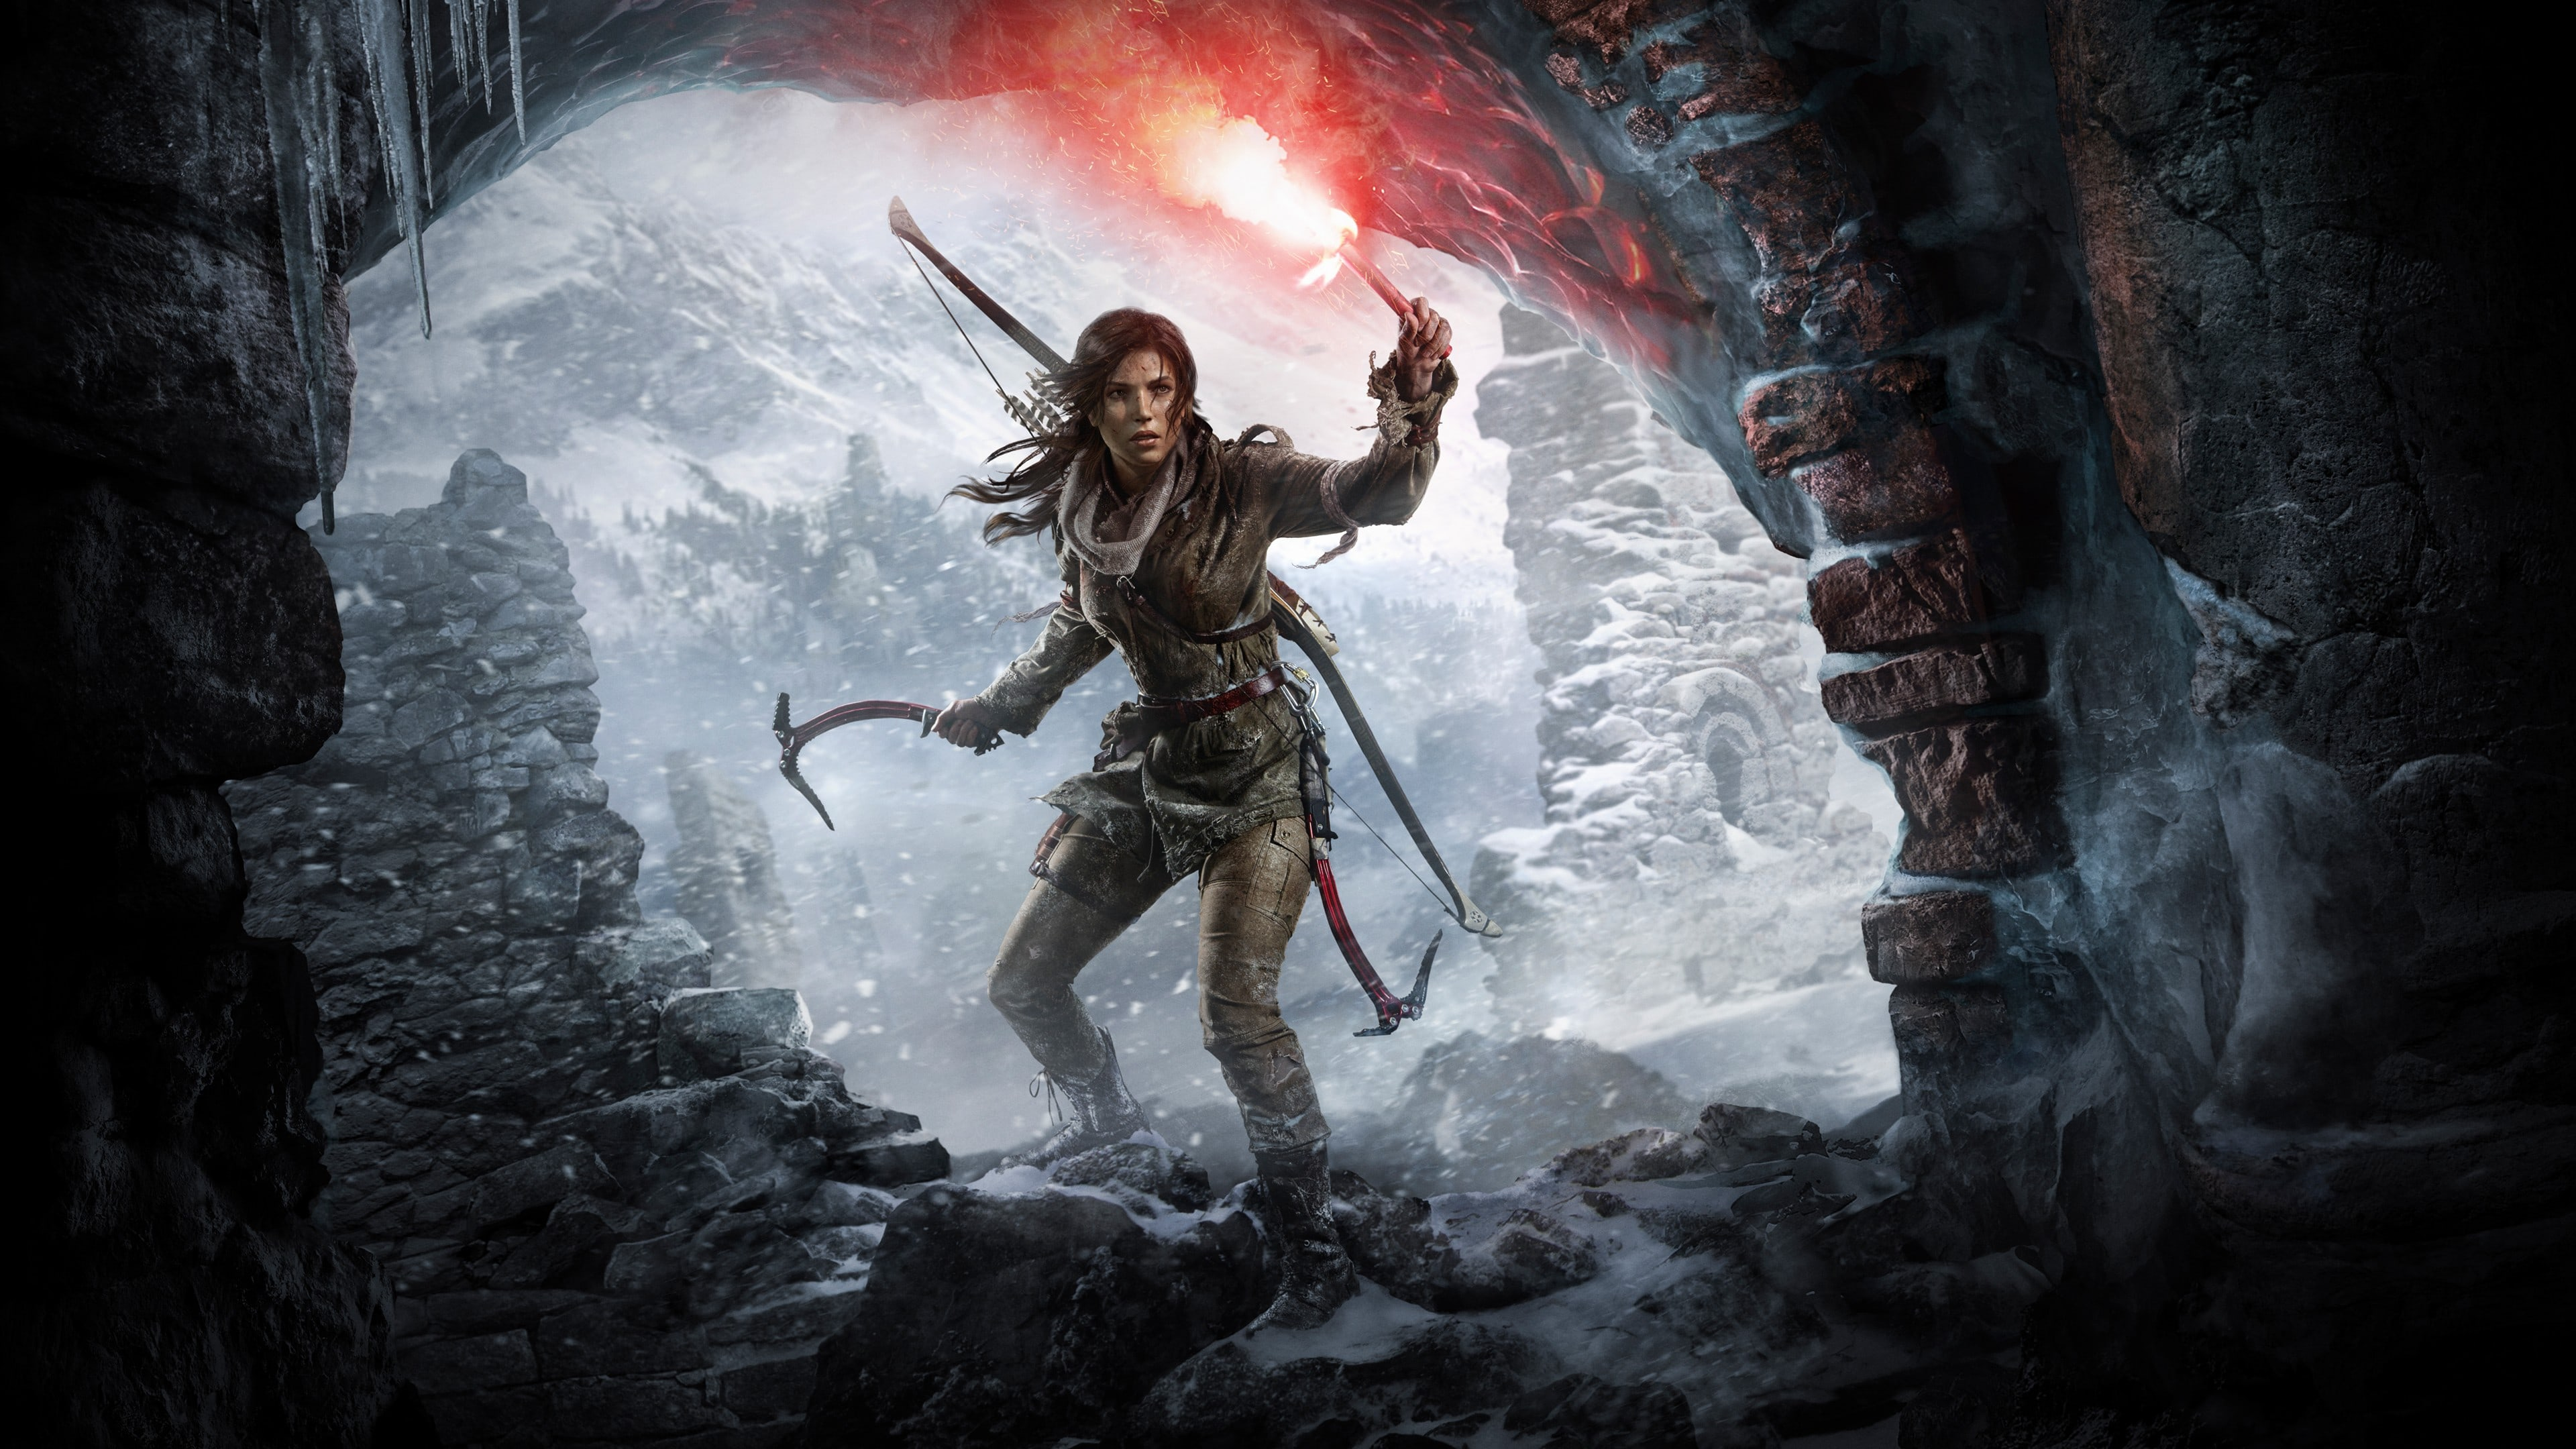 Rise of the Tomb Raider Wallpapers